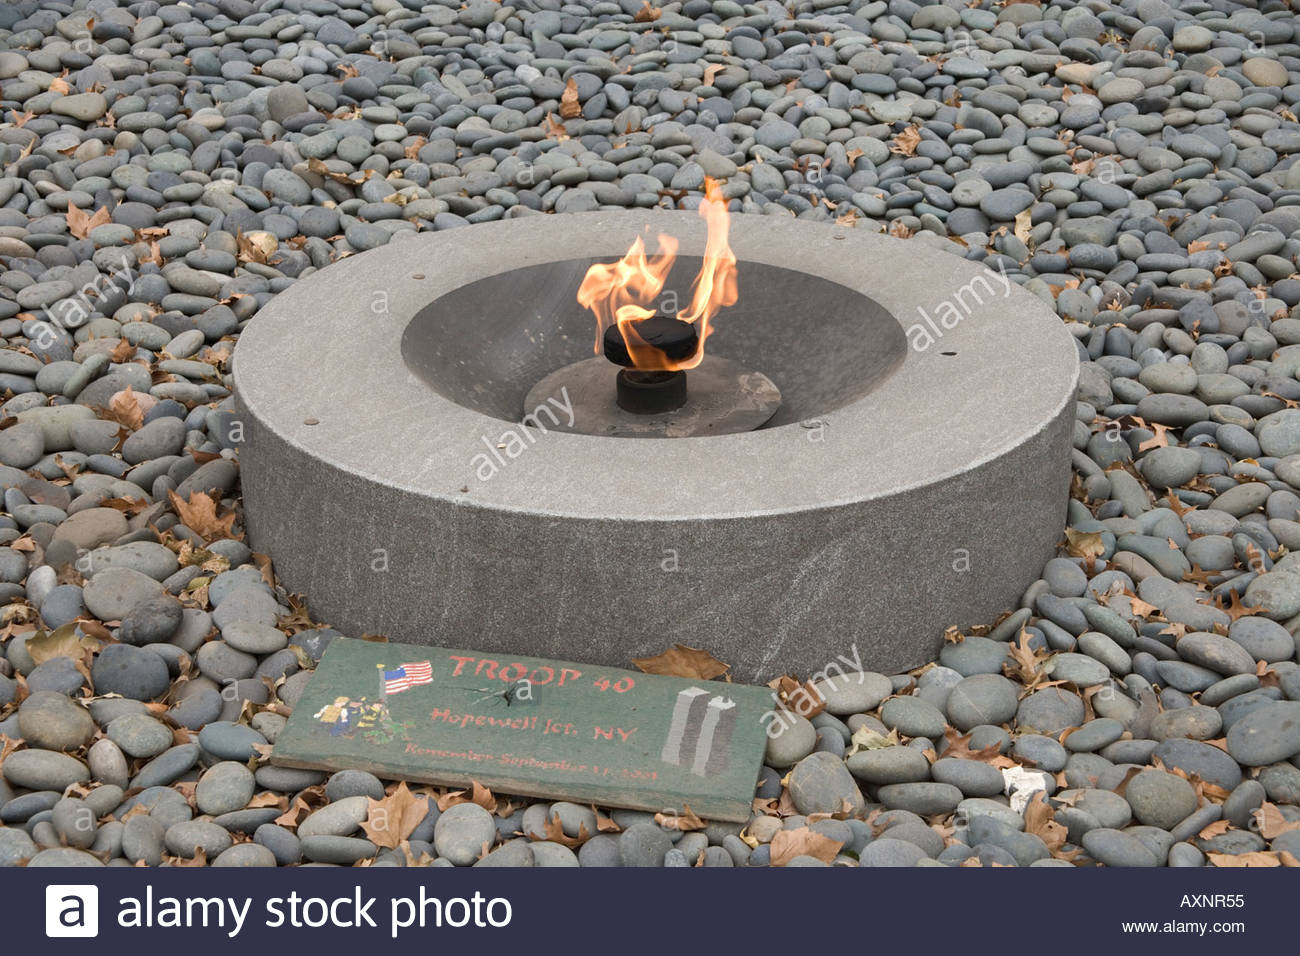 eternal flame in memory of the September 11 2001 victims Battery Park New York city - Stock Image